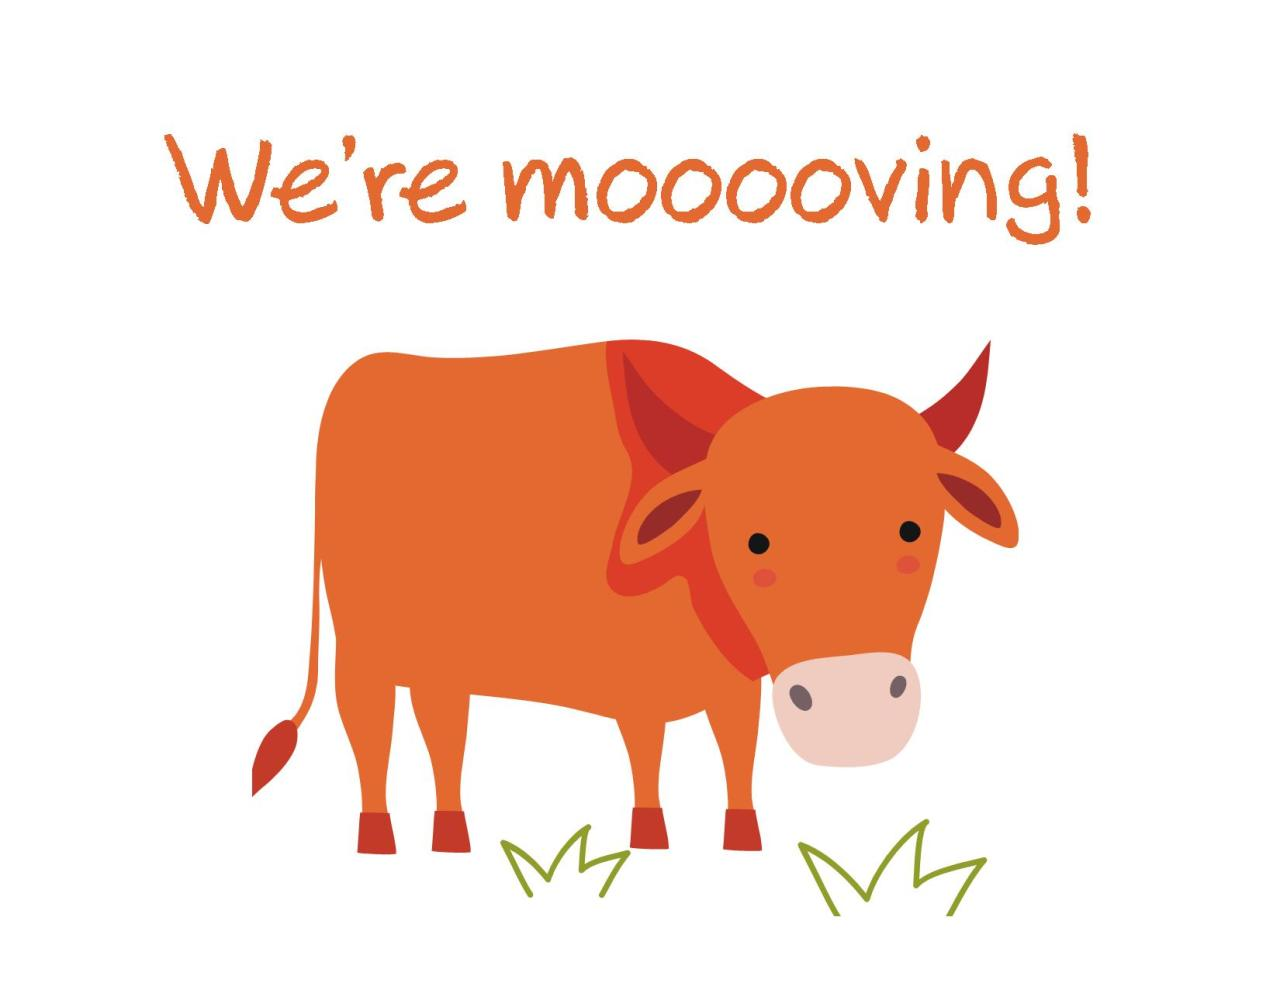 Moving announcement Change of address card Free Printable We re mooooooving